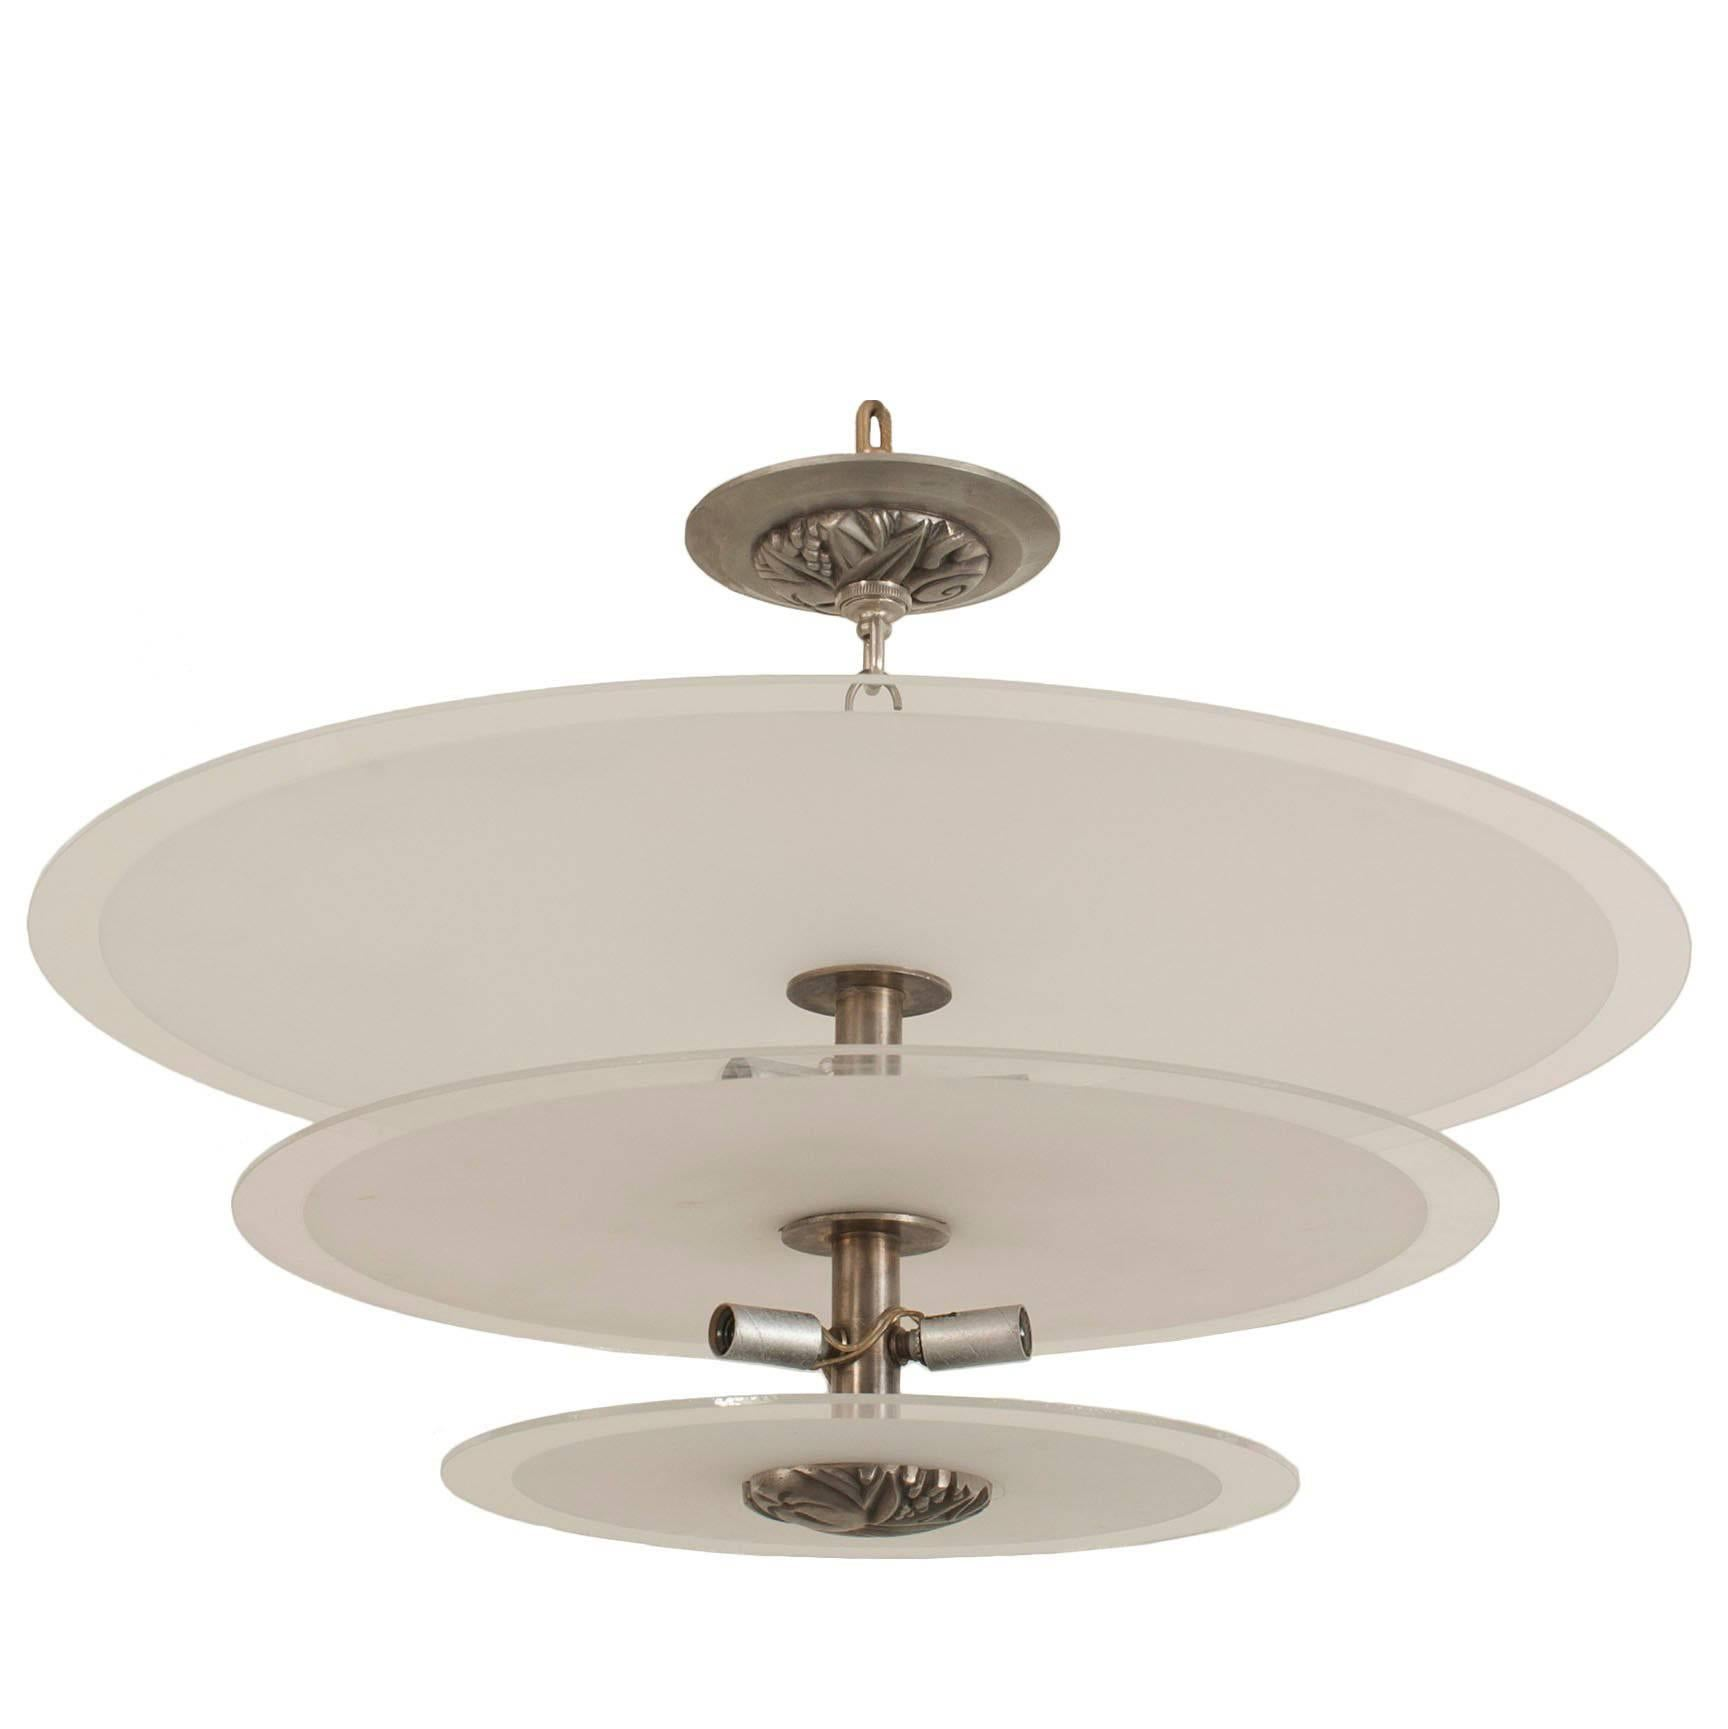 French 1940s Chandelier with Three Graduated Round Tiered Shades